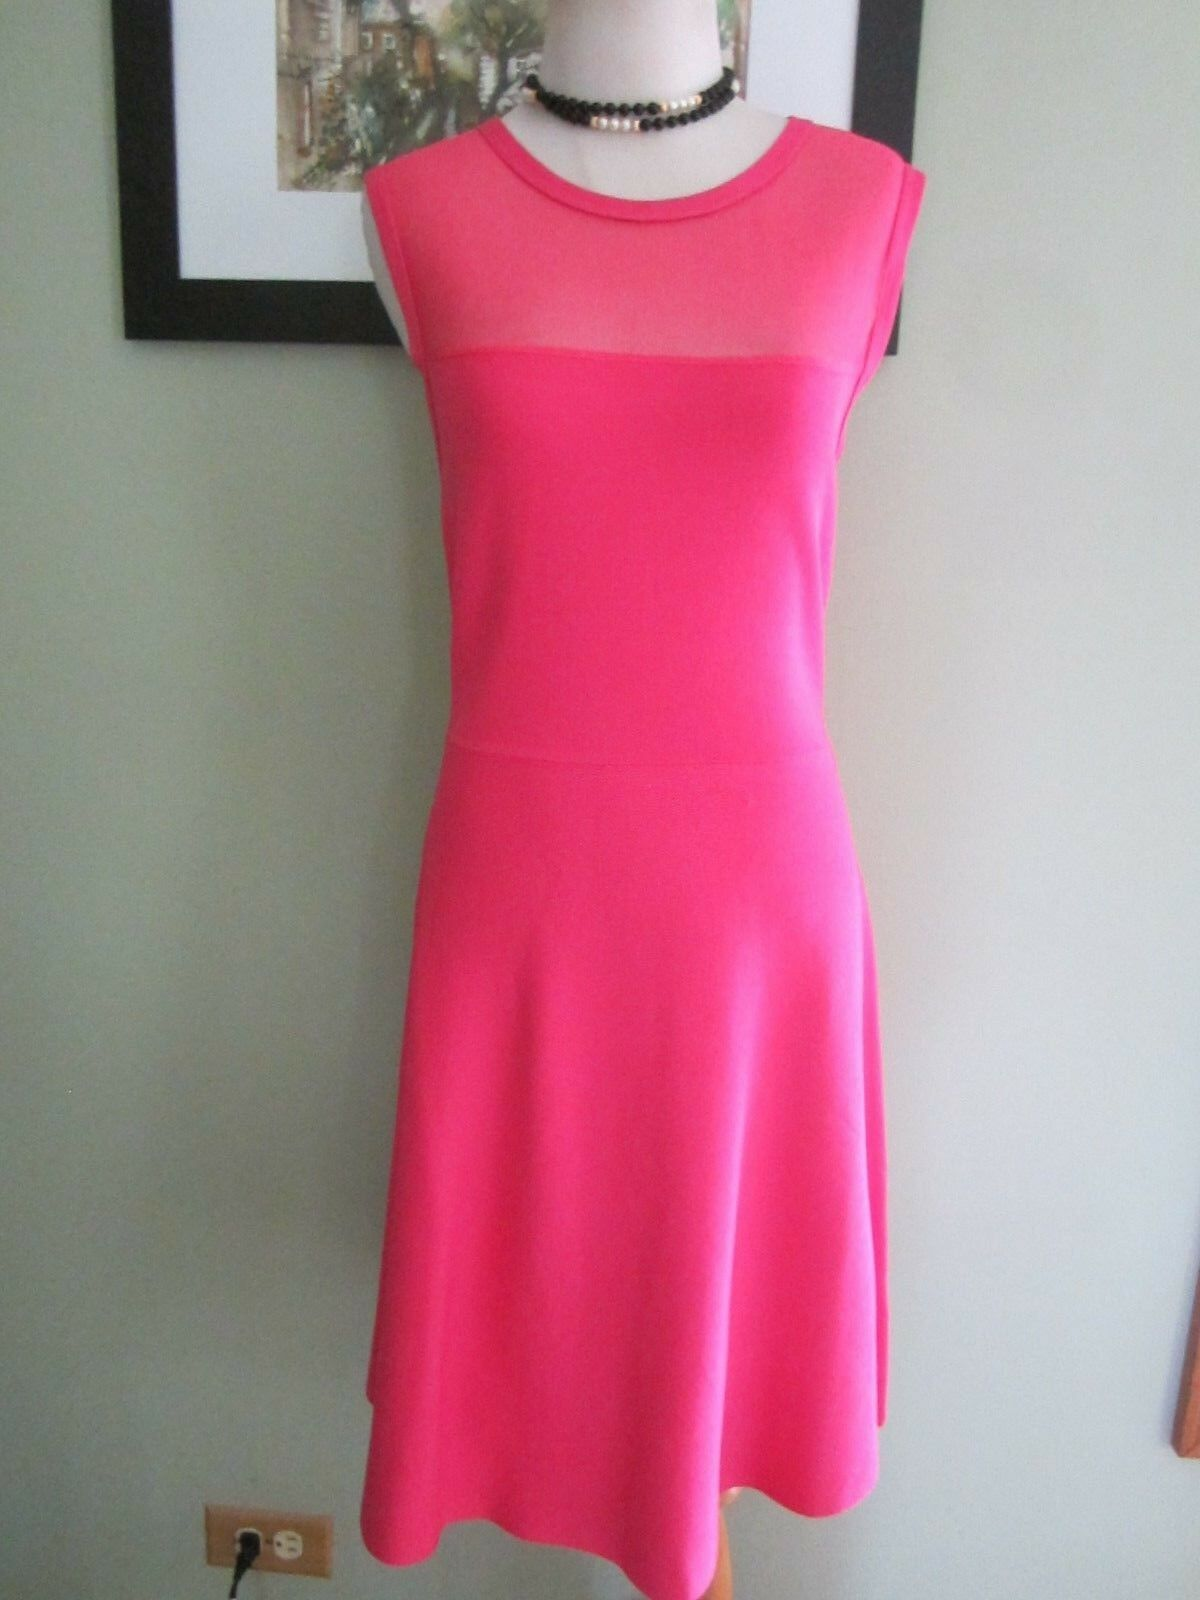 LINE Hot Pink Sleeveless Sumer Dress Size L